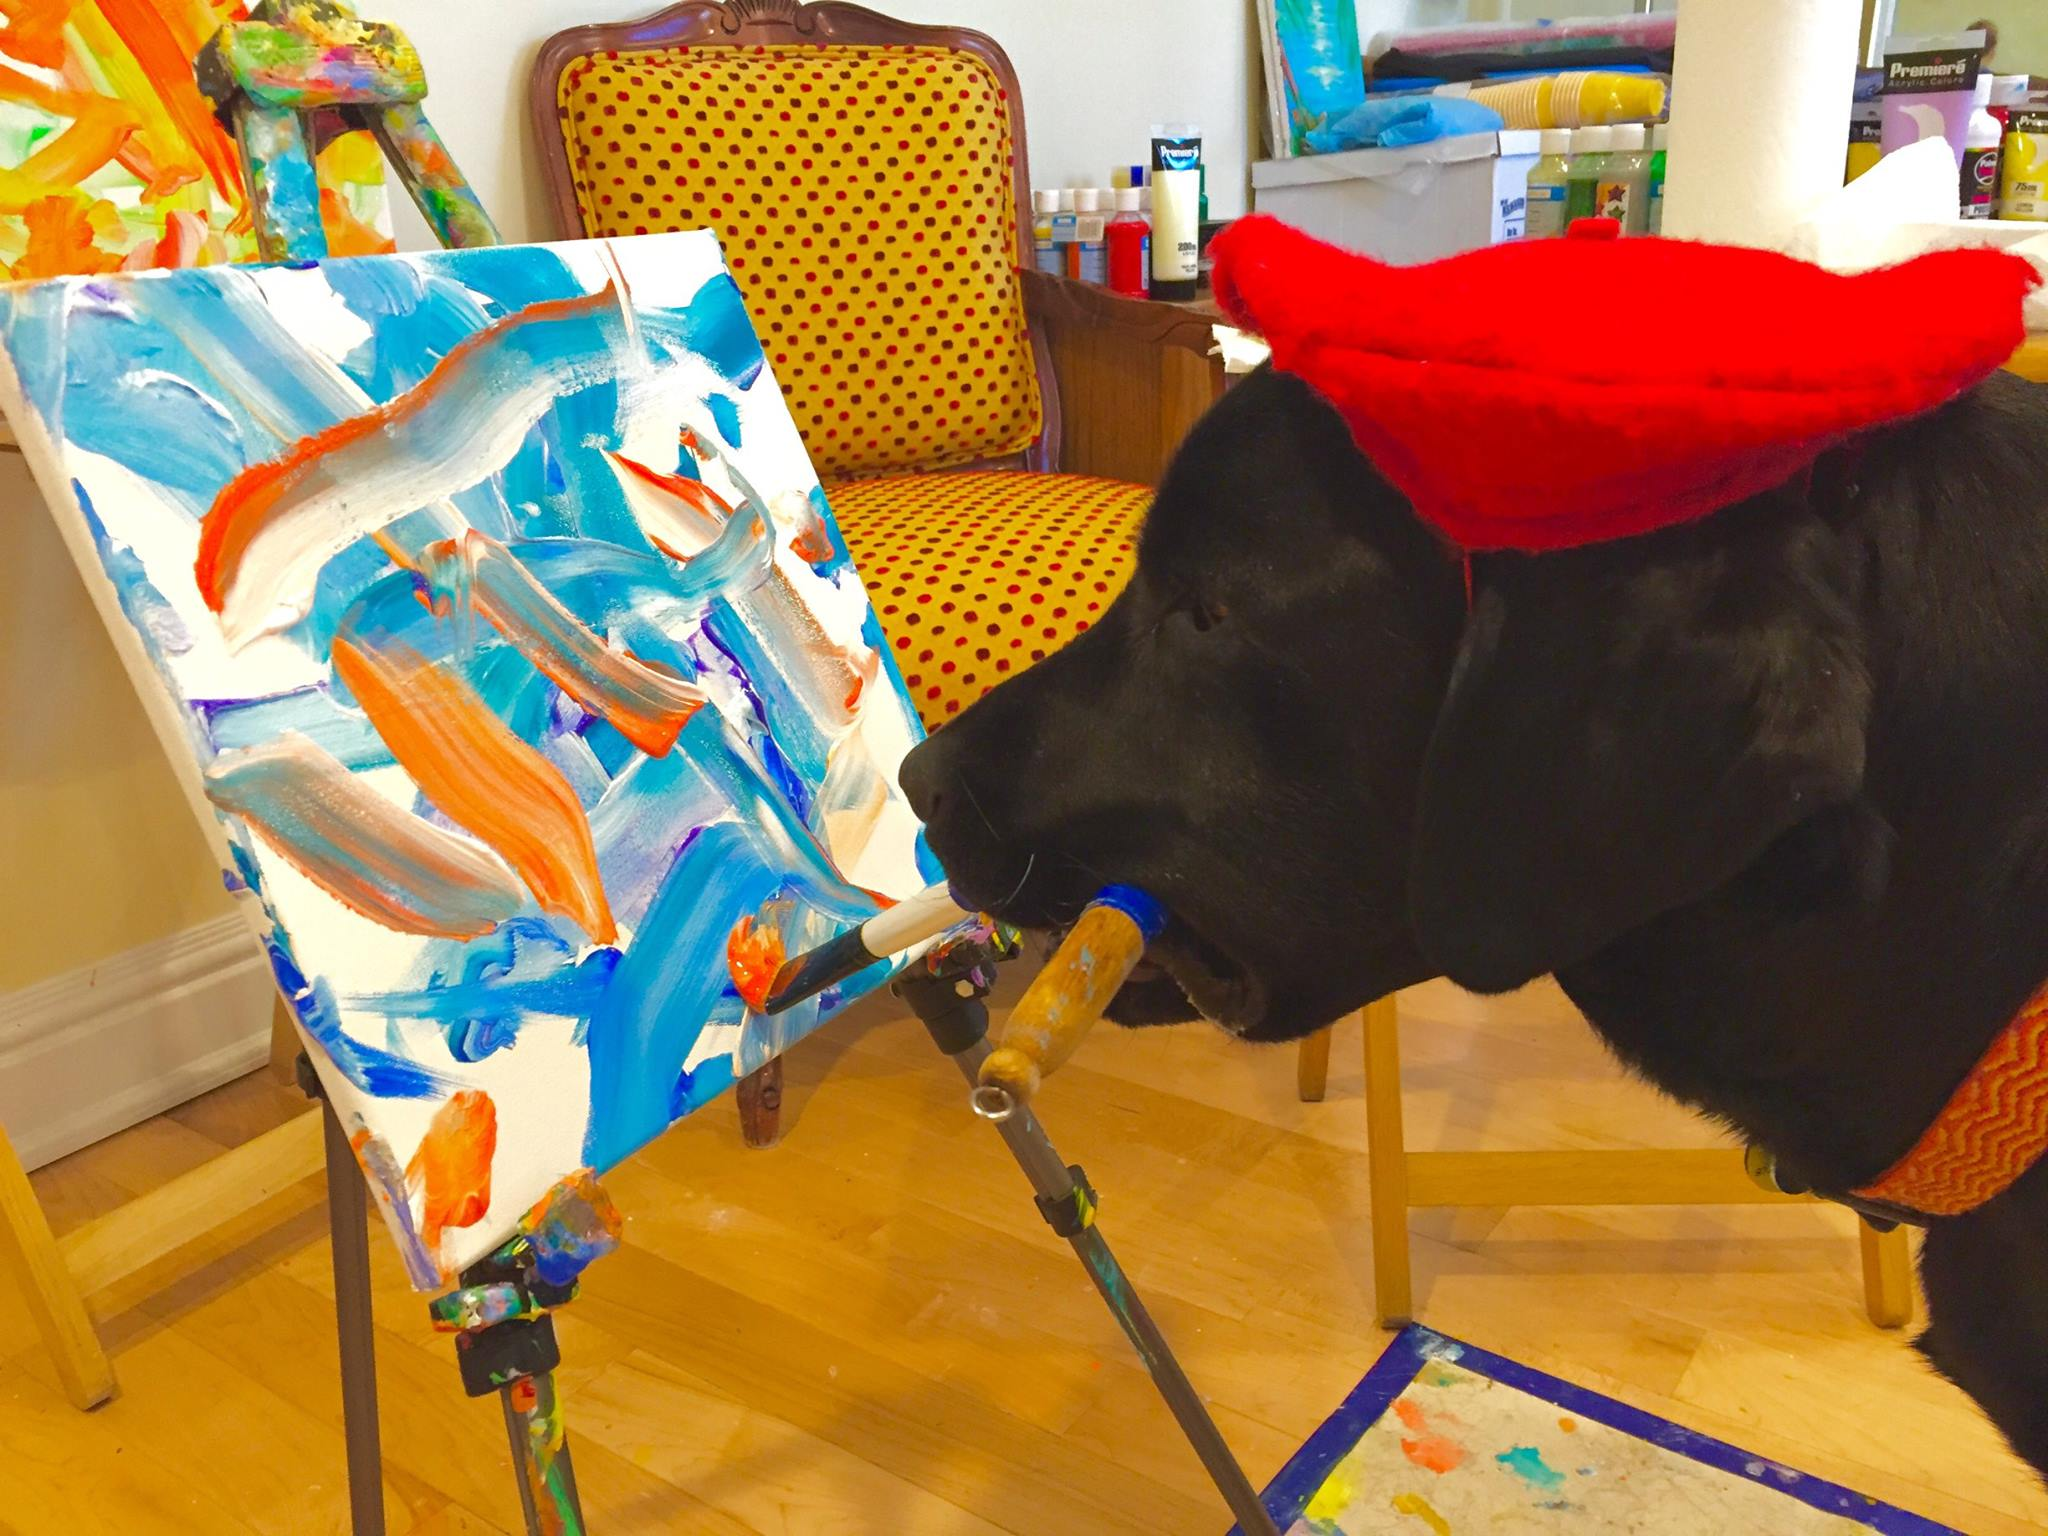 Dog wearing a red beret and painting